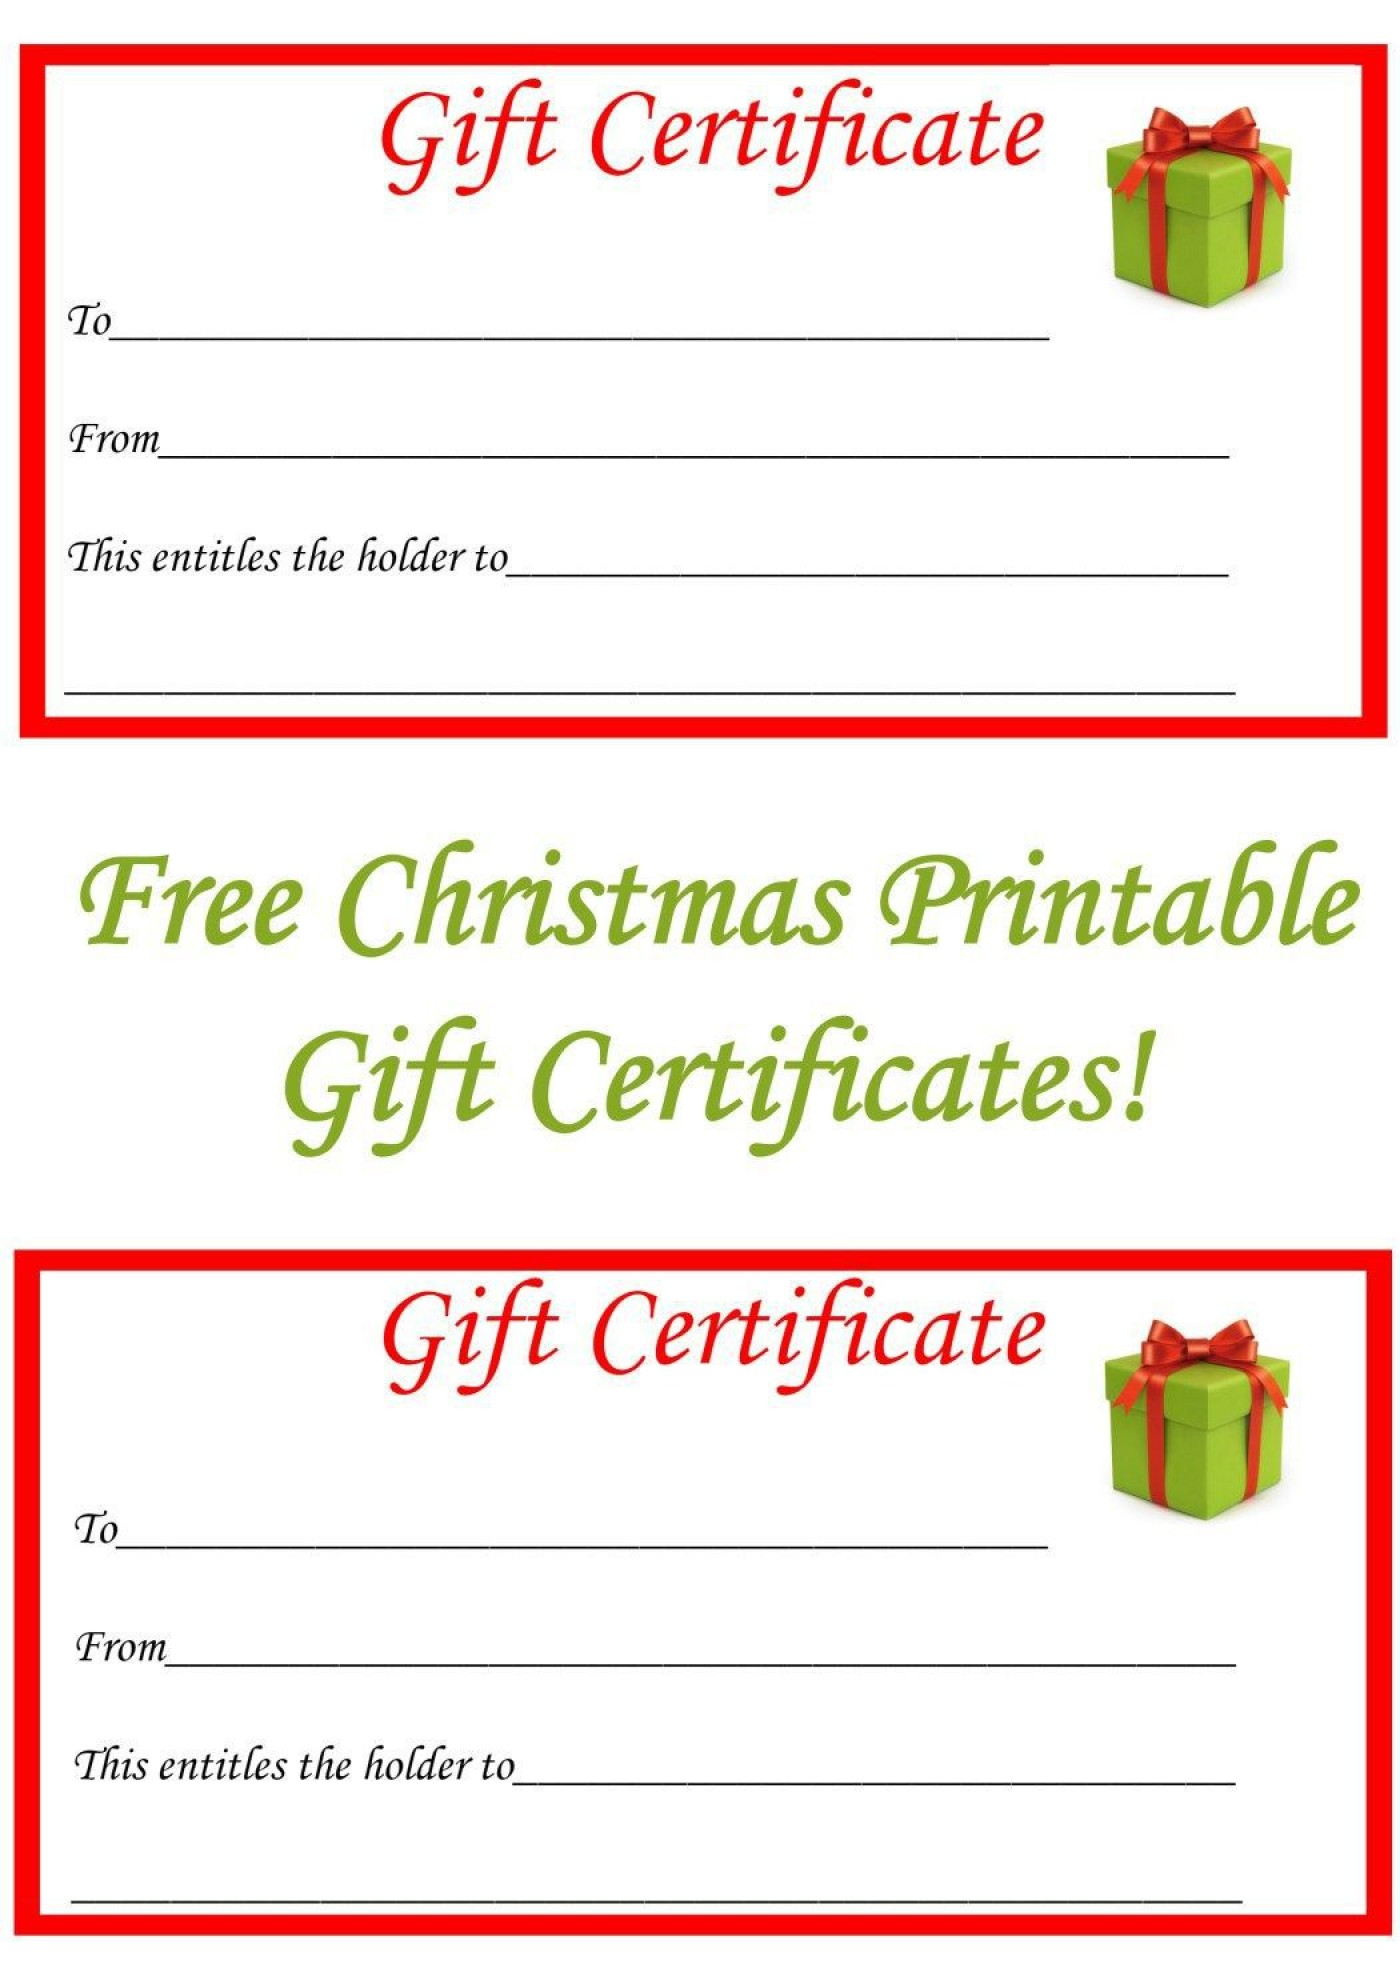 004 Dreaded Template For Christma Gift Certificate Free High Resolution  Voucher Uk Editable Download Microsoft Word1400